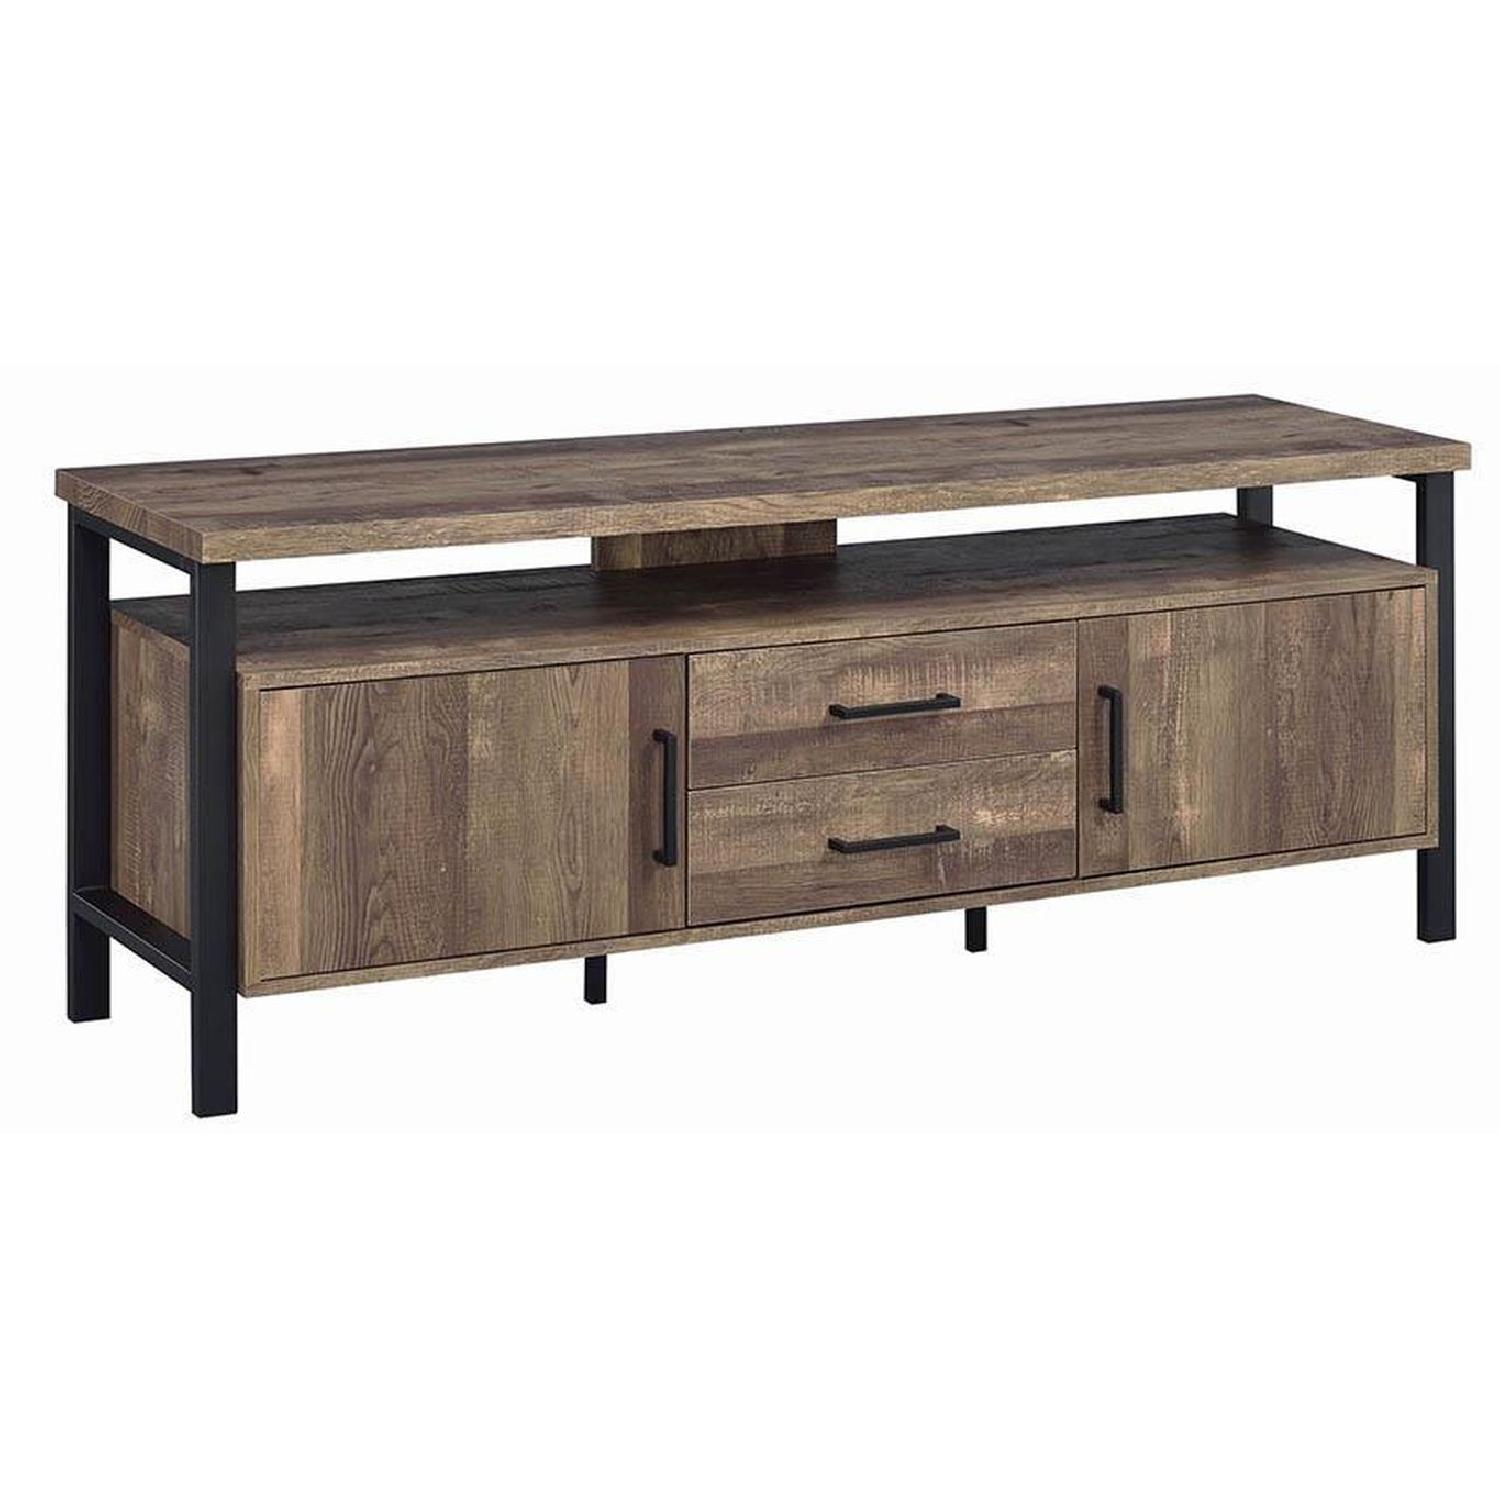 TV Stand In Rustic Oak Finish w/ 2 Cabinets & 2 Drawers - image-0